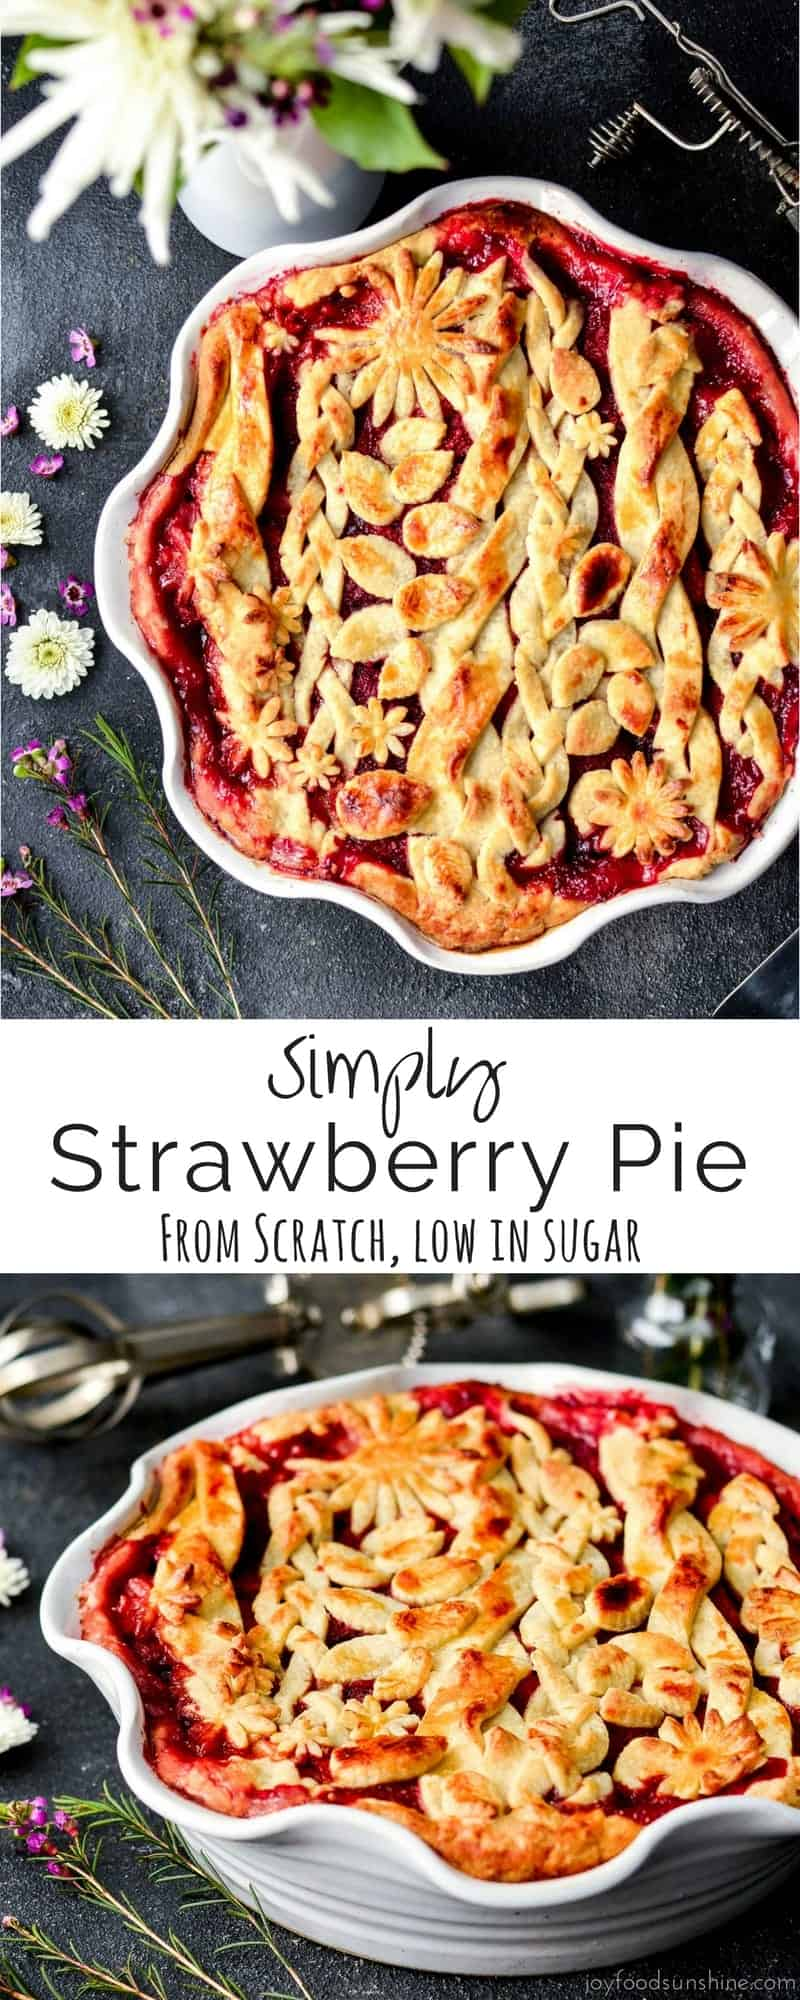 Simply Strawberry Pie! A fresh, made-from-scratch strawberry pie that is low in sugar! The natural flavor and sweetness of the strawberries really shine in this delicious dessert!